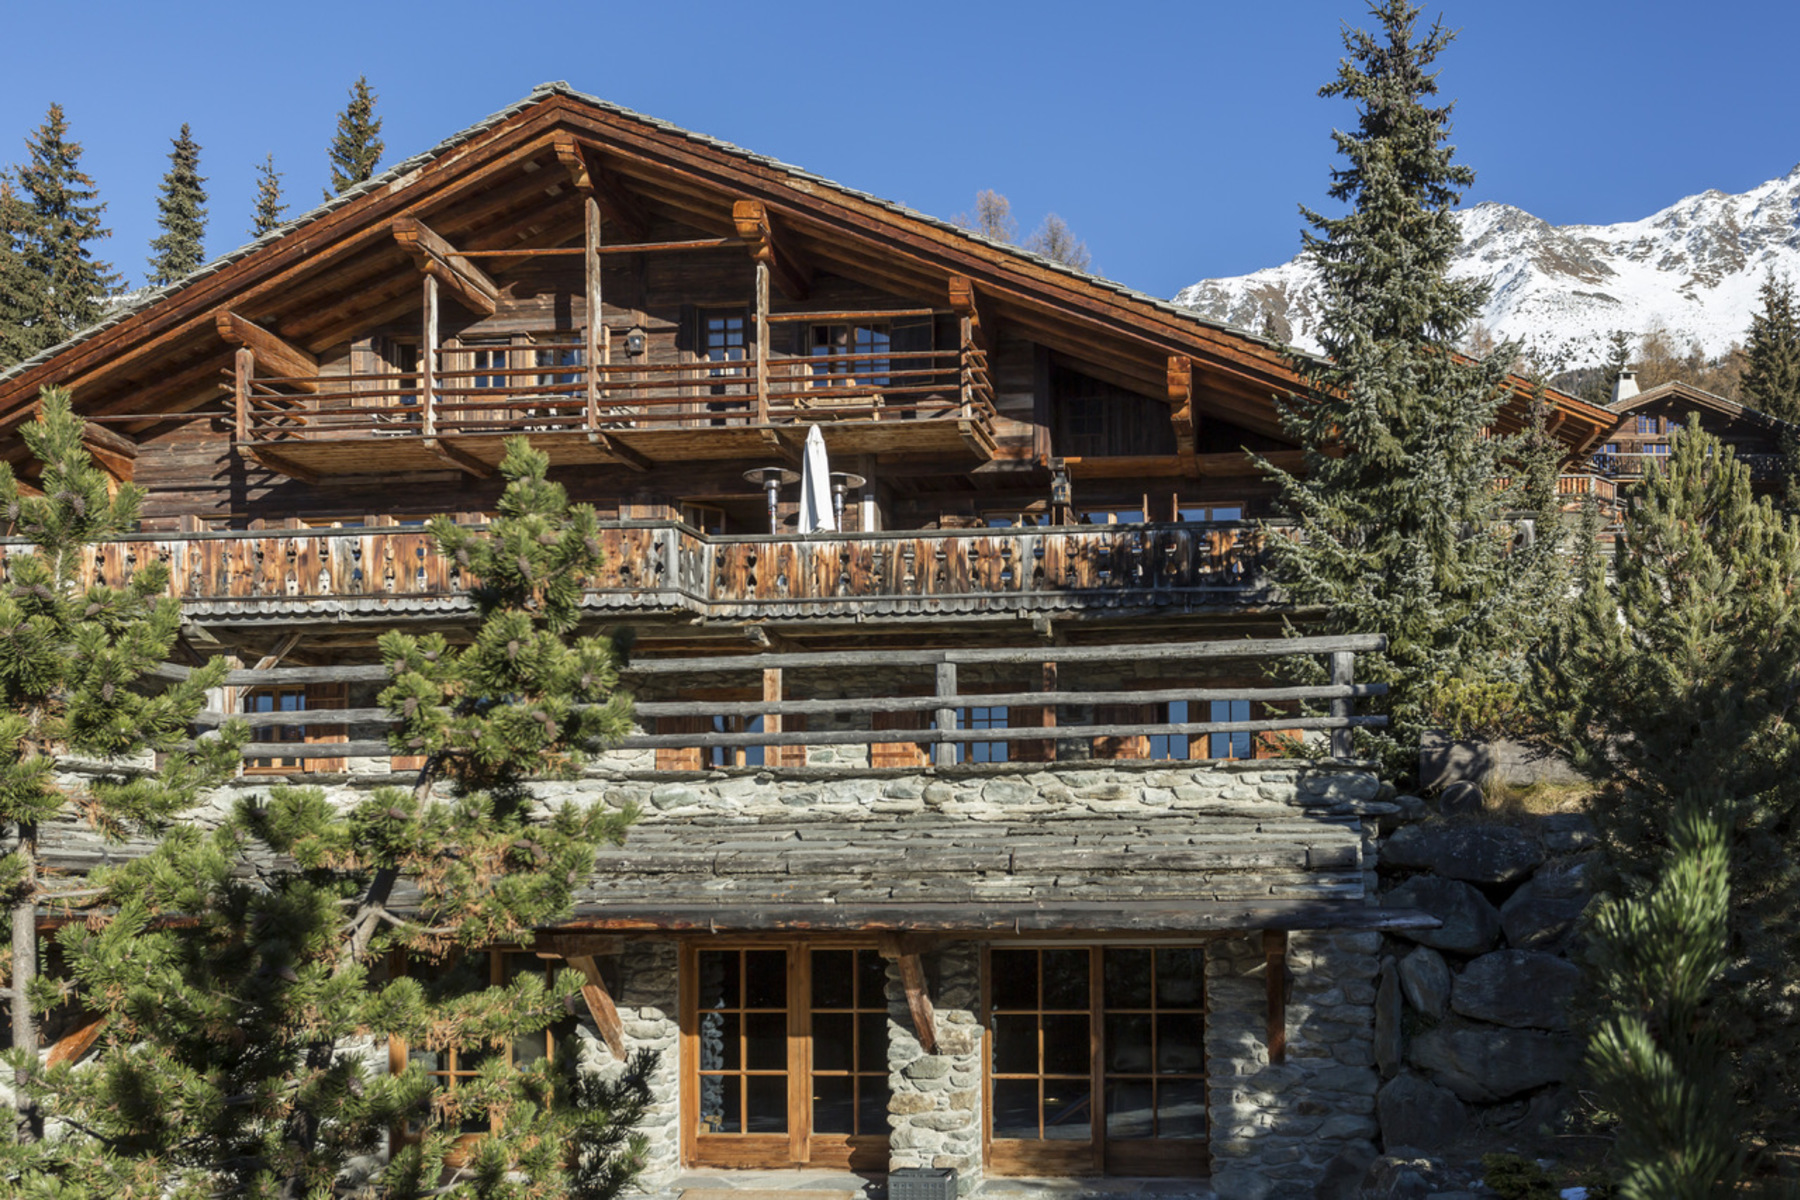 Single Family Homes for Sale at Chalet BEL HORIZON Verbier Verbier, Valais 1936 Switzerland